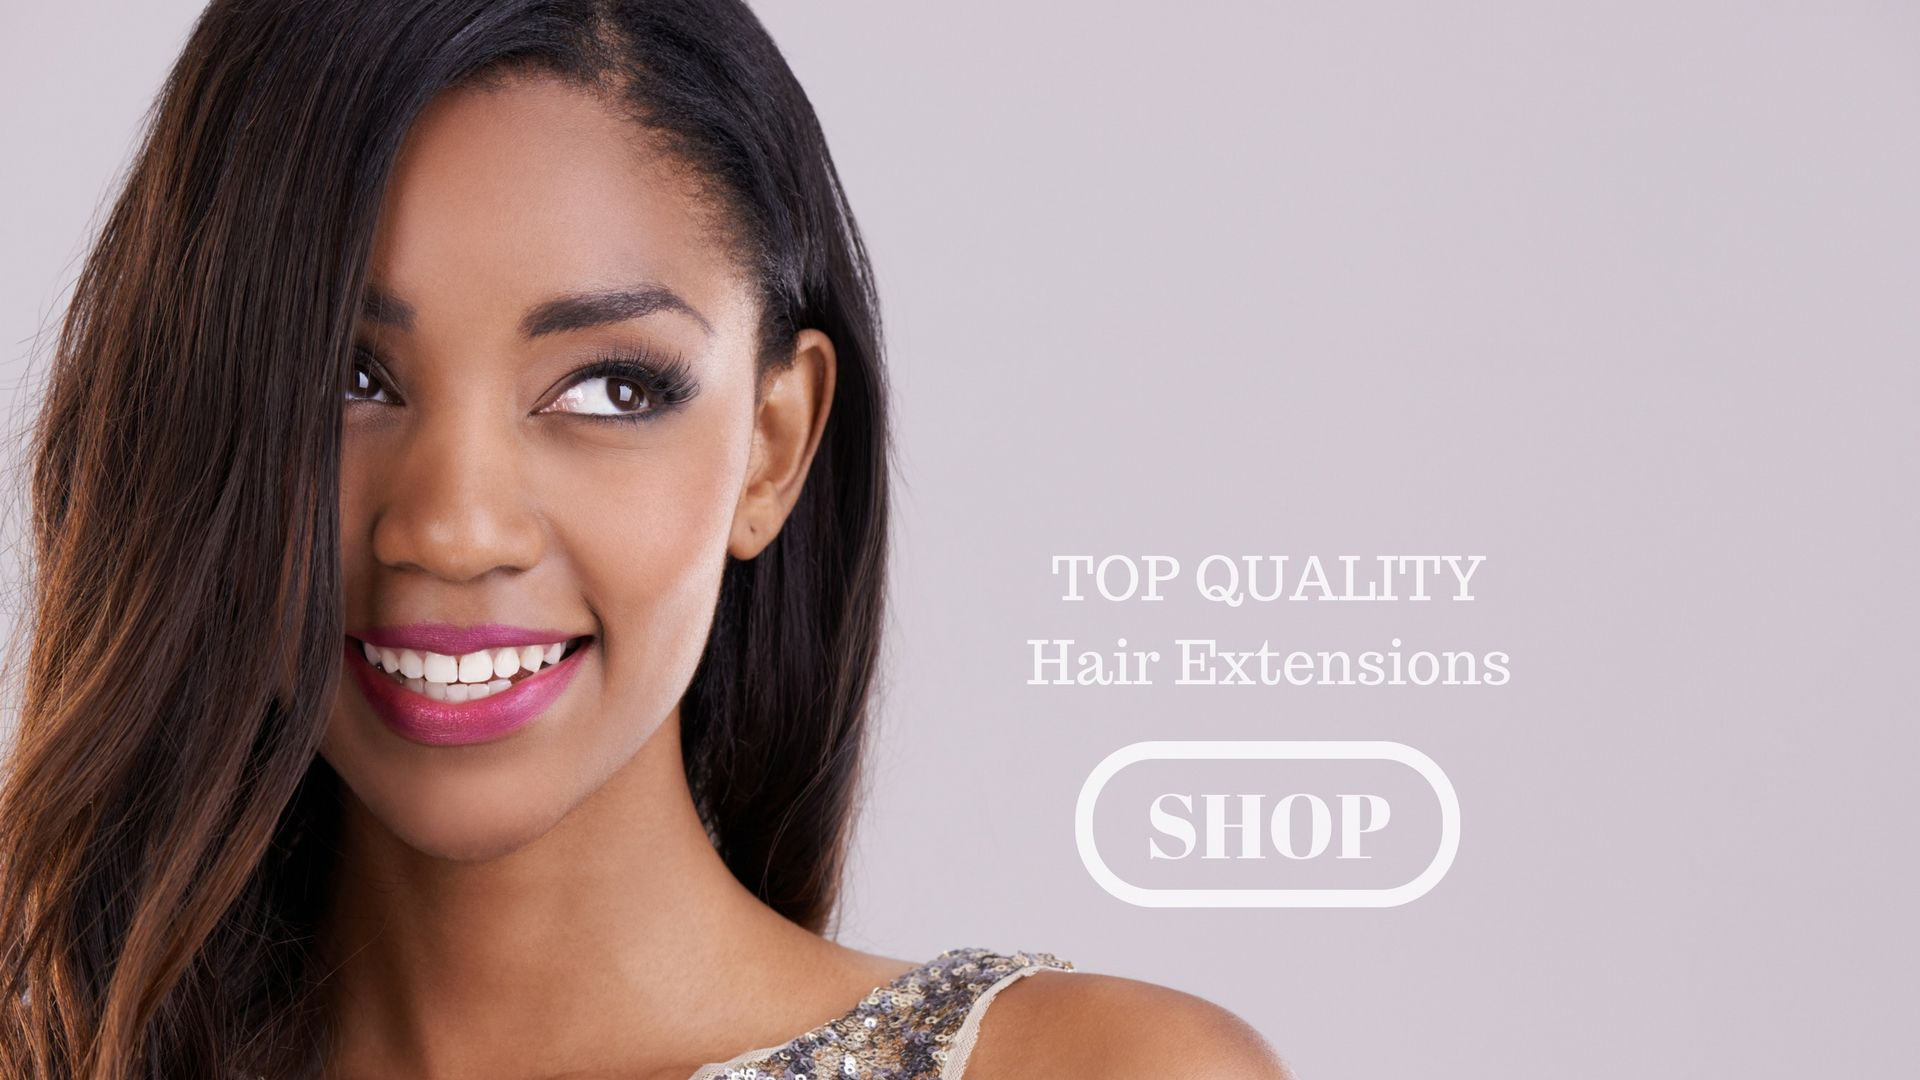 Shop Hair Extensions